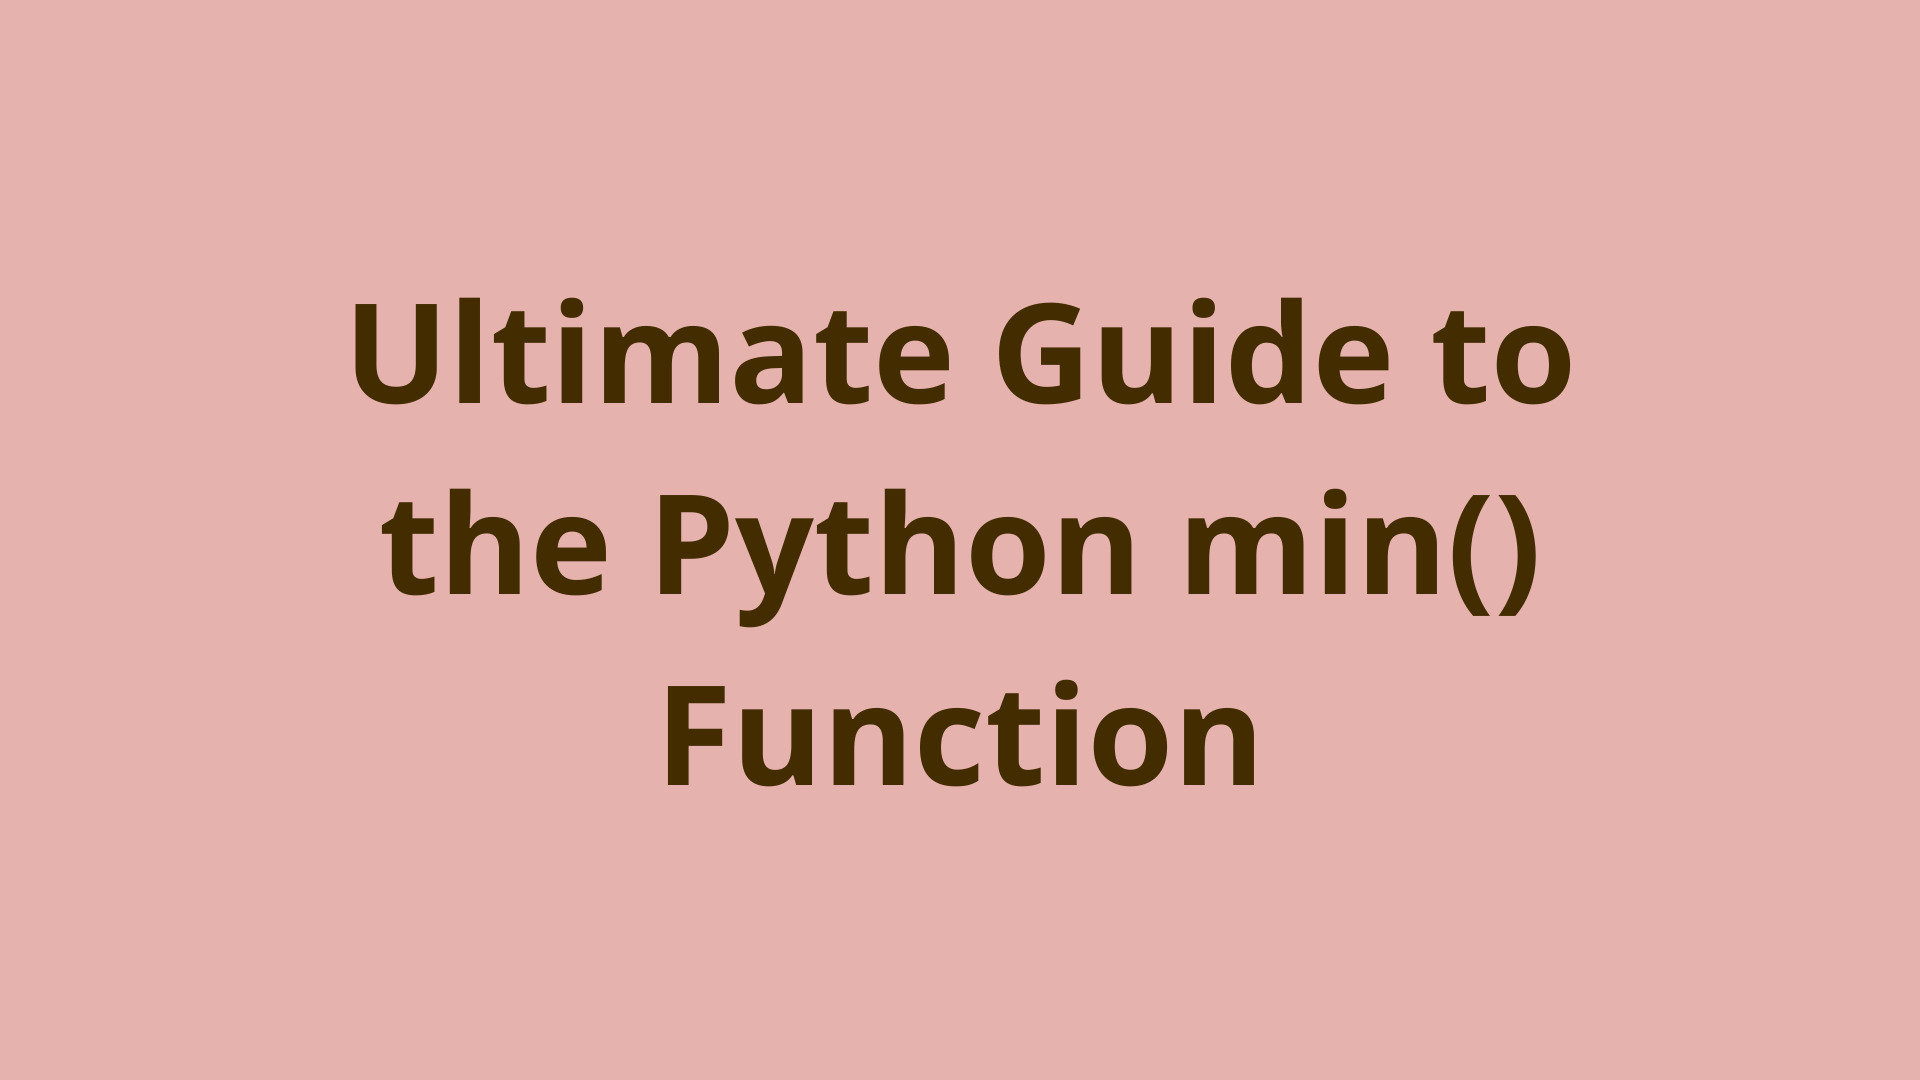 Image of Ultimate Guide to the Python min() Function